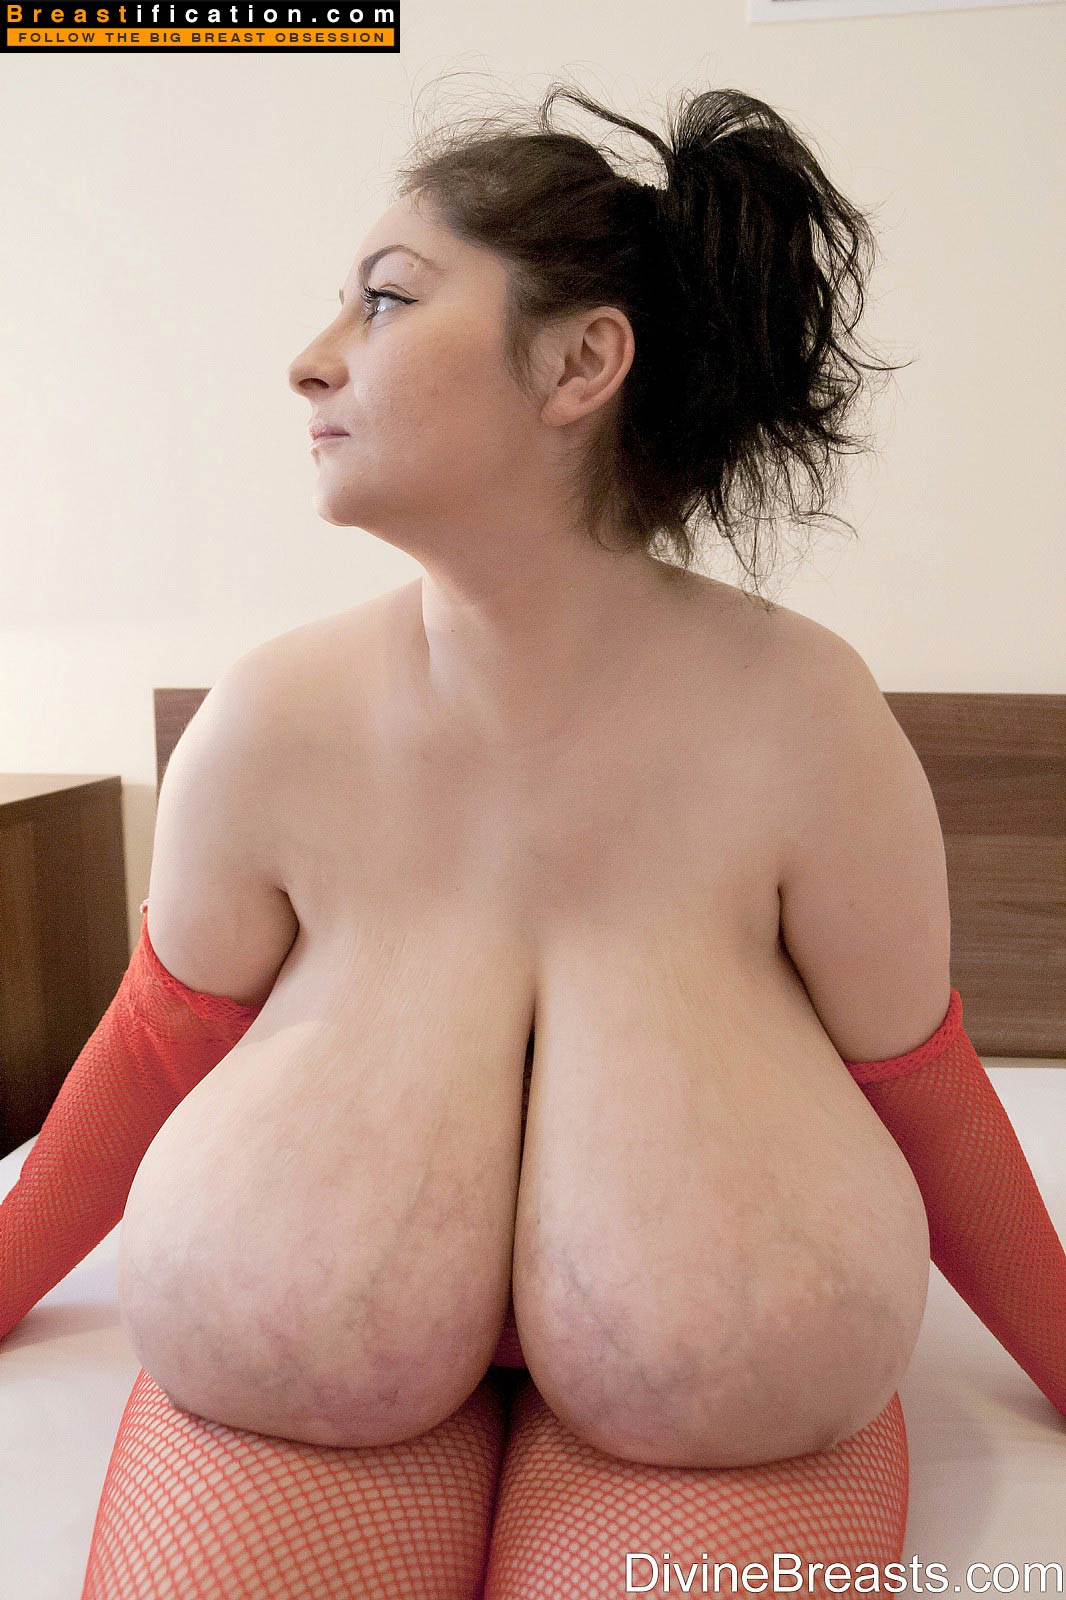 gigantic breasts